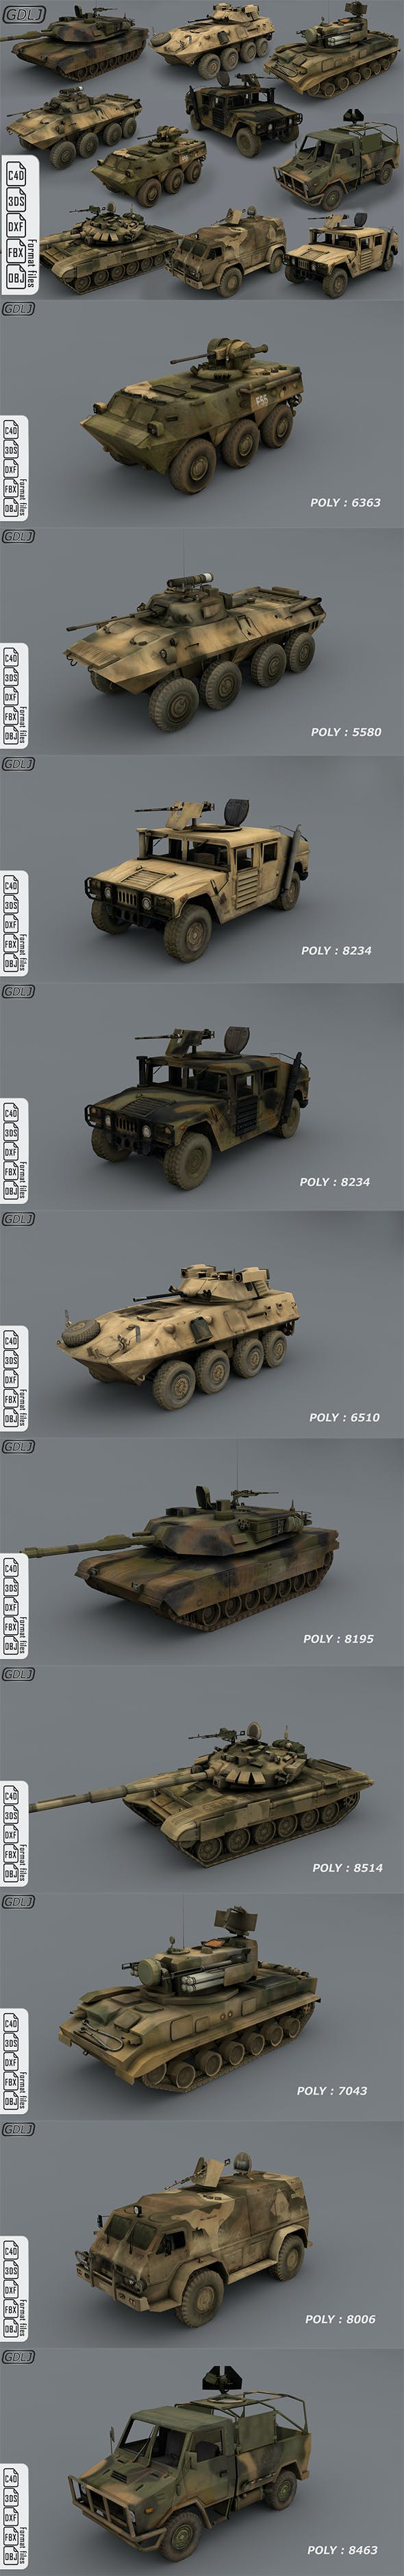 Army vehicles - 10 3d models Ready for games [ Low poly ] - 3DOcean Item for Sale